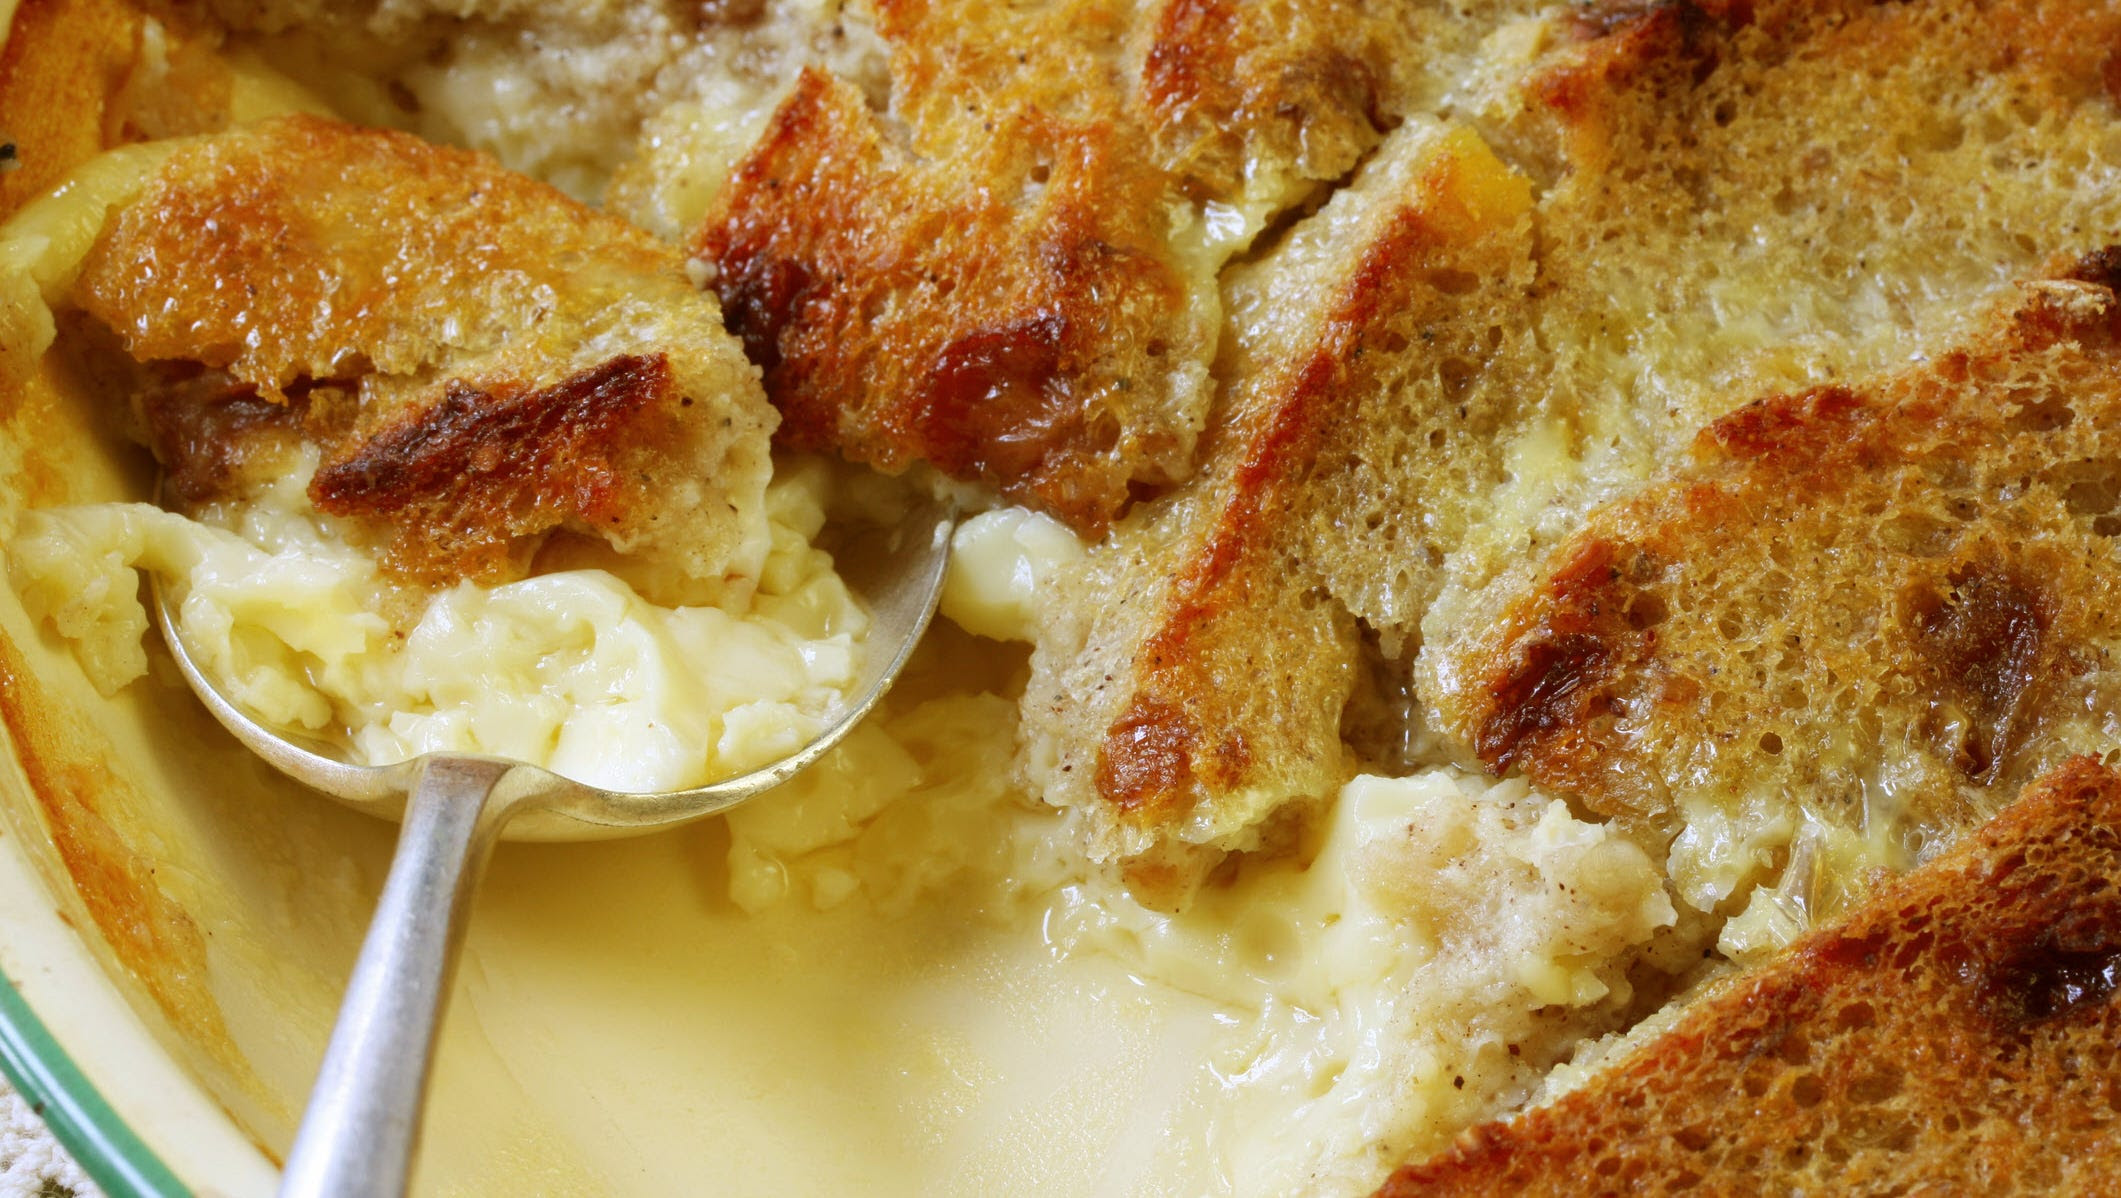 RECIPE: French Toast Bread Pudding